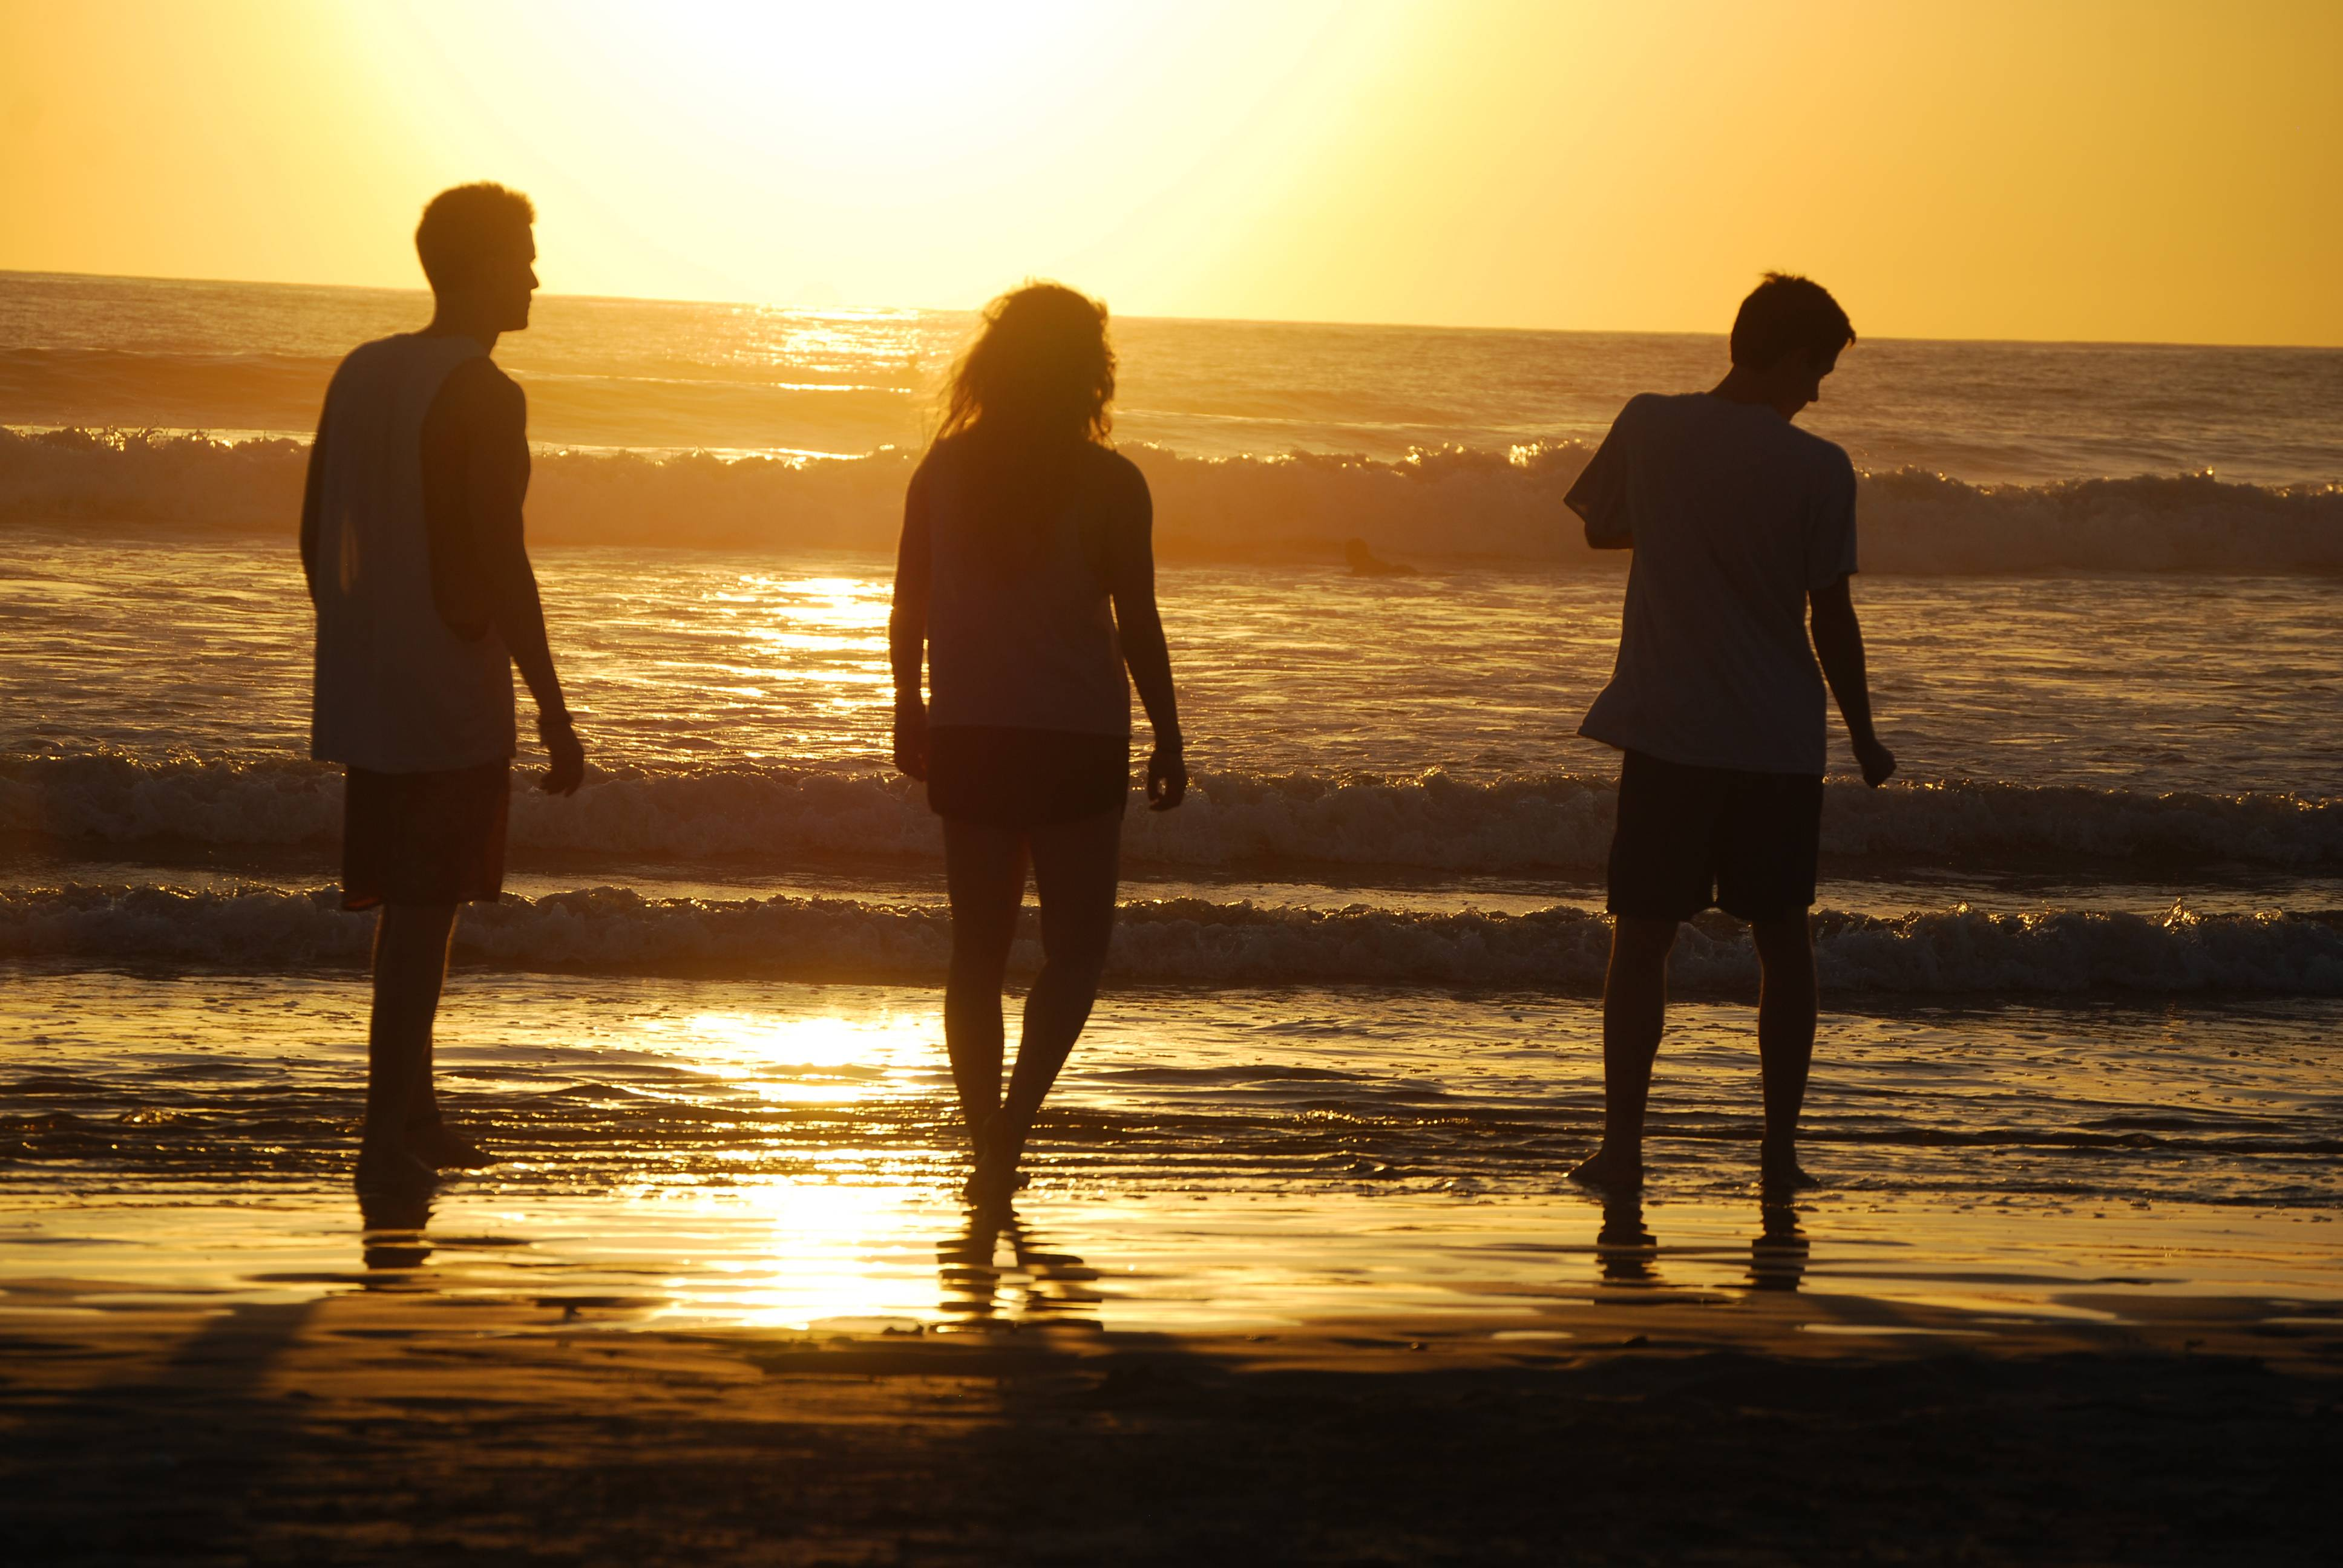 Liam Godfrey-Jolicoeur, left, Ruby Dombek and Jacob Dombek of N. Ferrisburg, Vt., soak in the sunset at Playa Guiones in Nosara, Costa Rica.